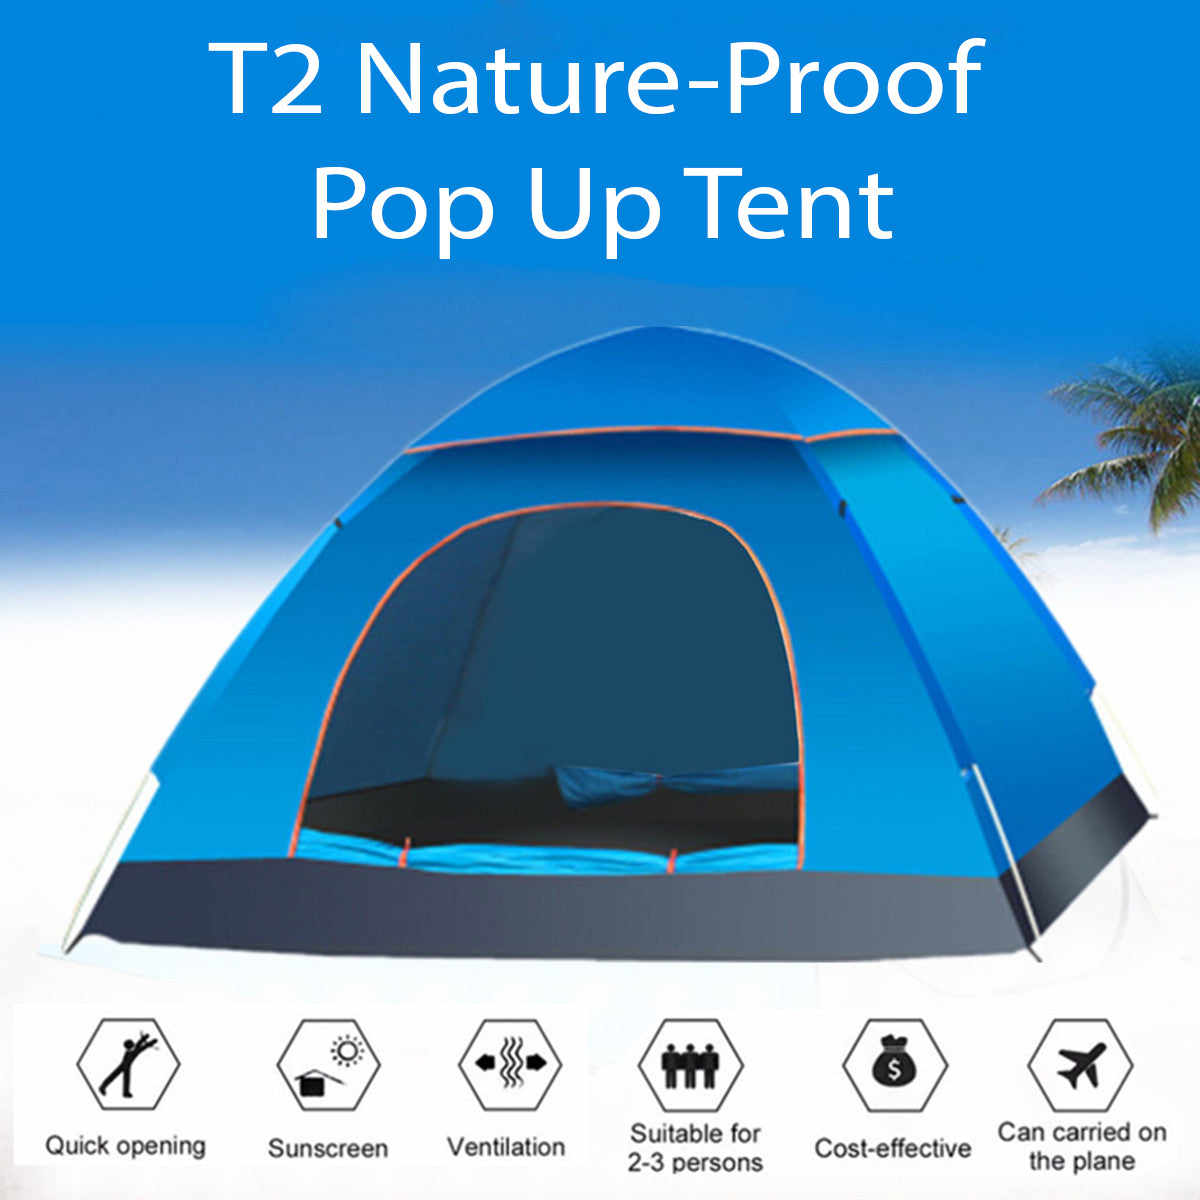 T2 Nature-Proof - Pop Up Tent